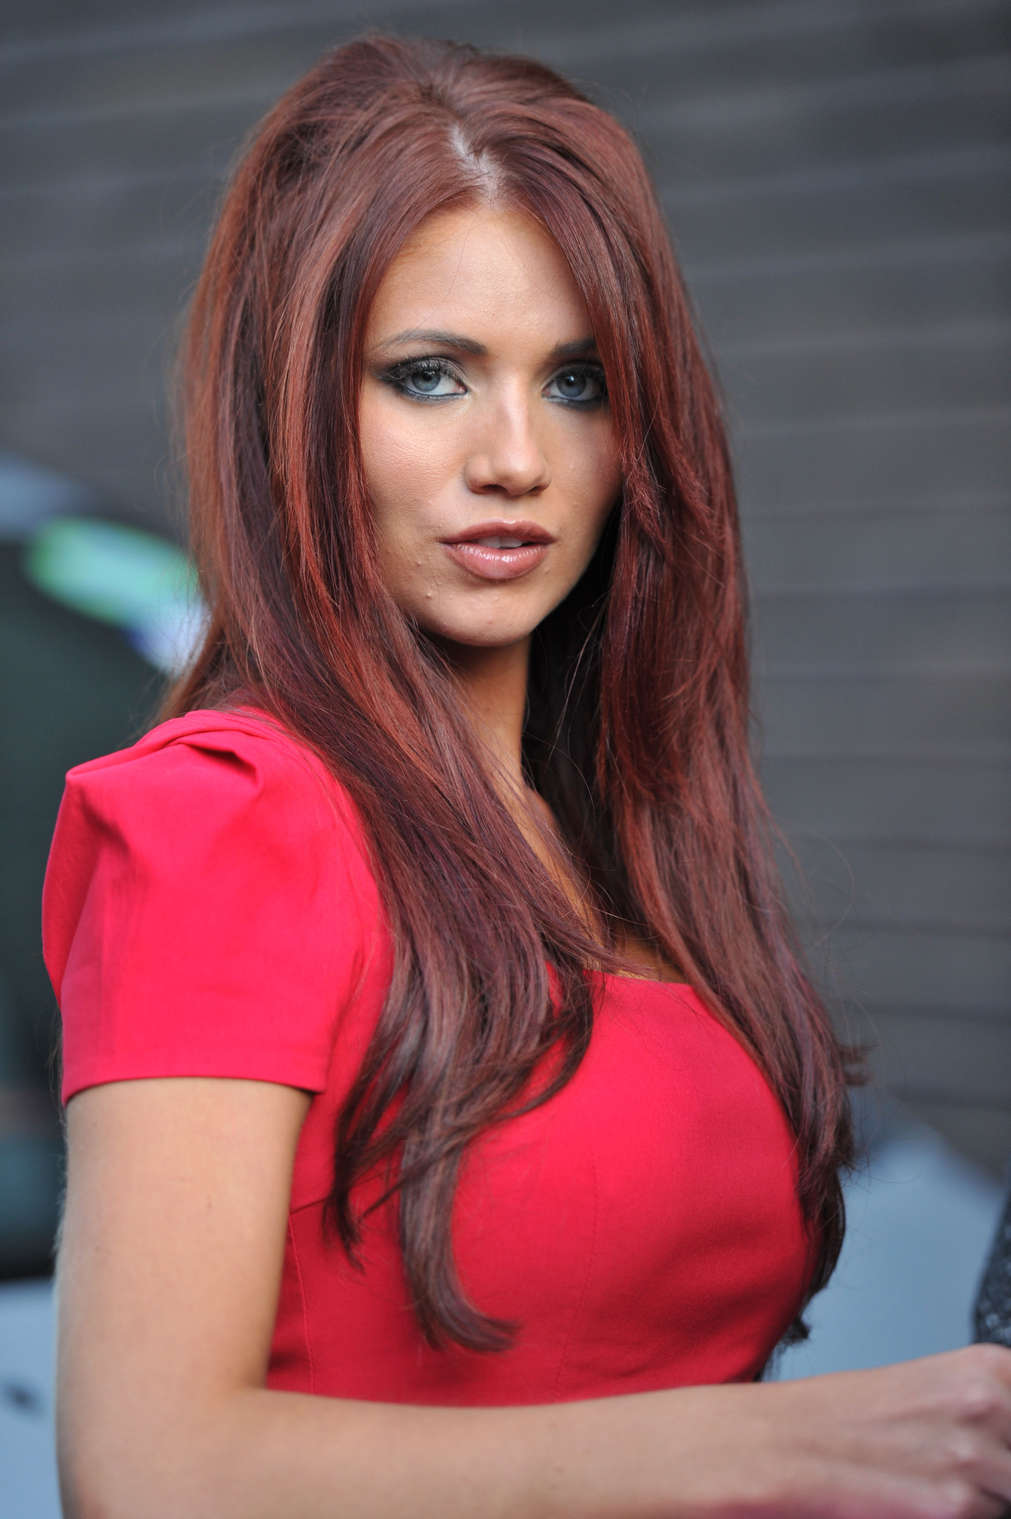 Amy Childs Hot In Red Dress In London 04 Gotceleb